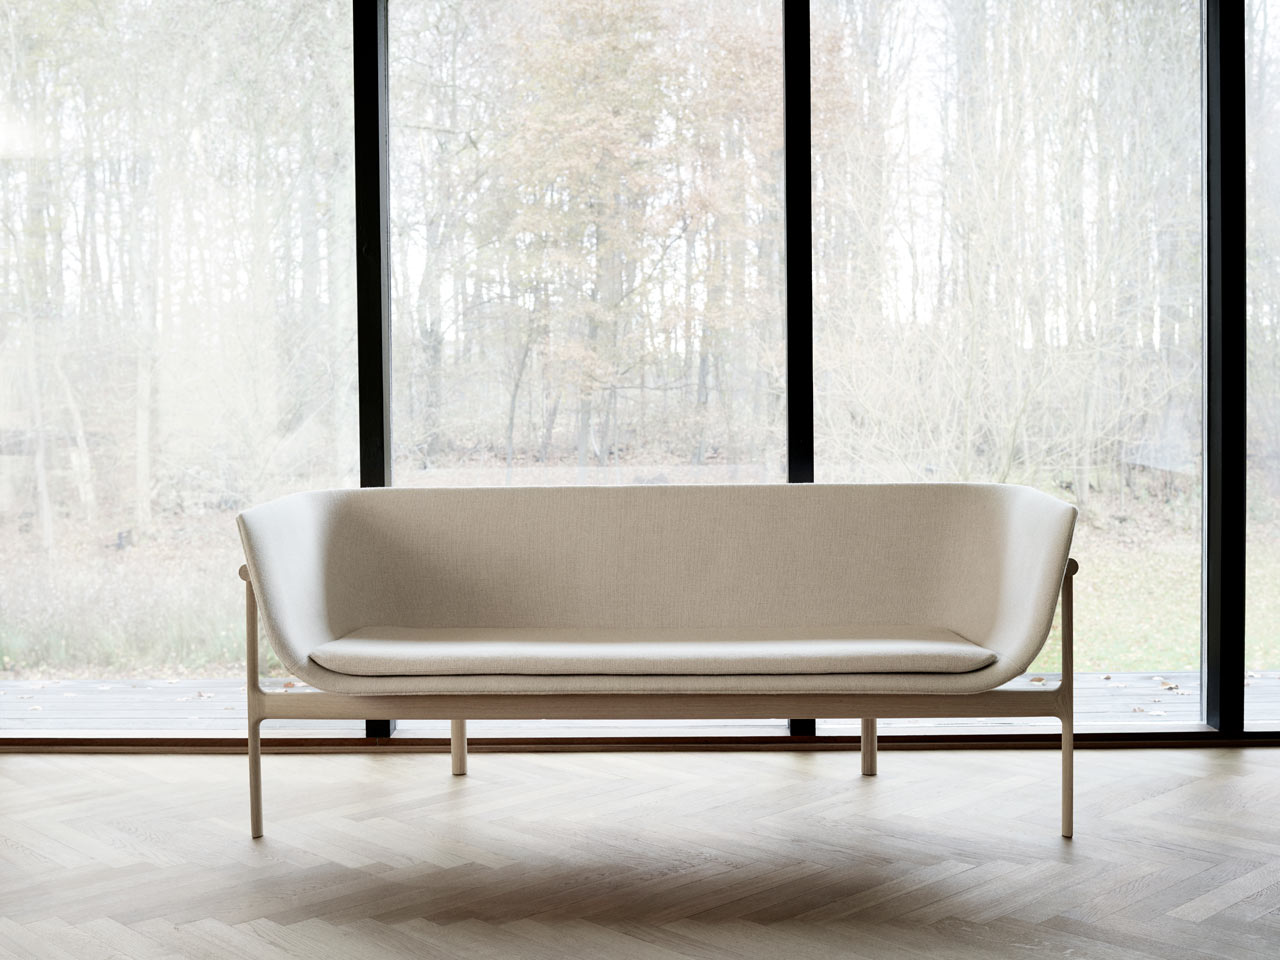 A Sculptural Sofa Inspired by an Old Tailor Shop